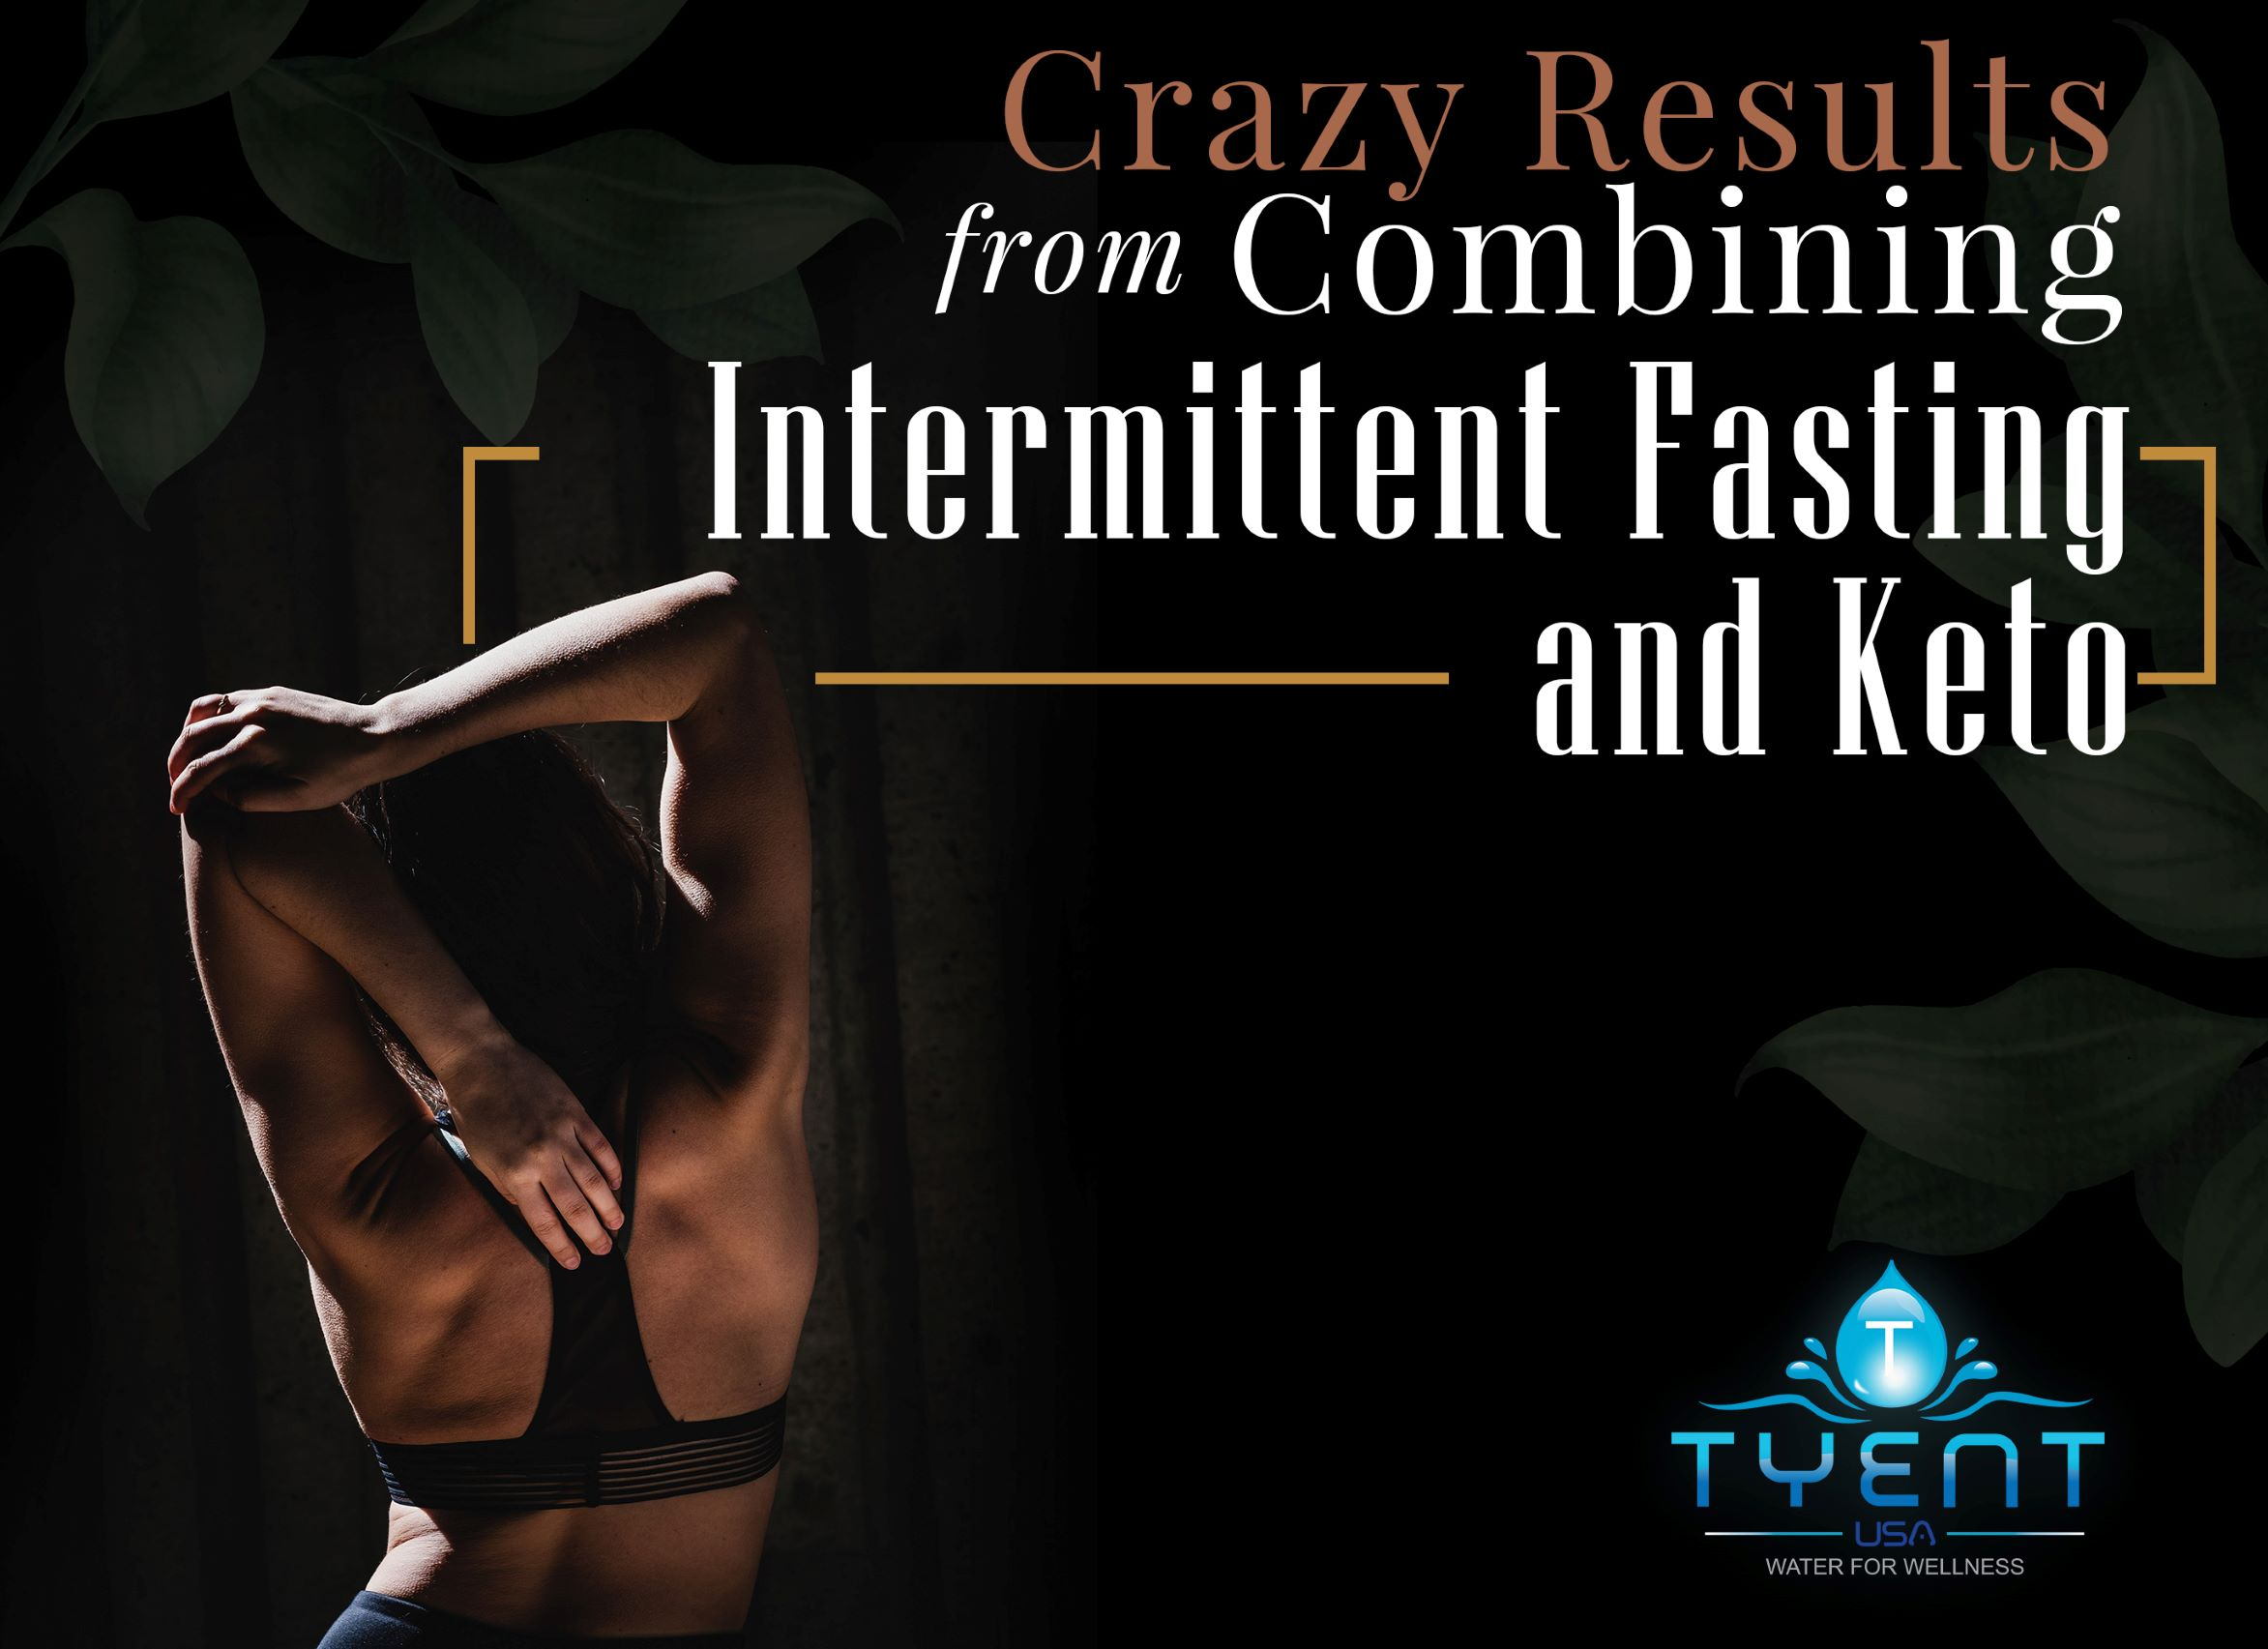 Intermittent Fasting and Keto Combination Diet